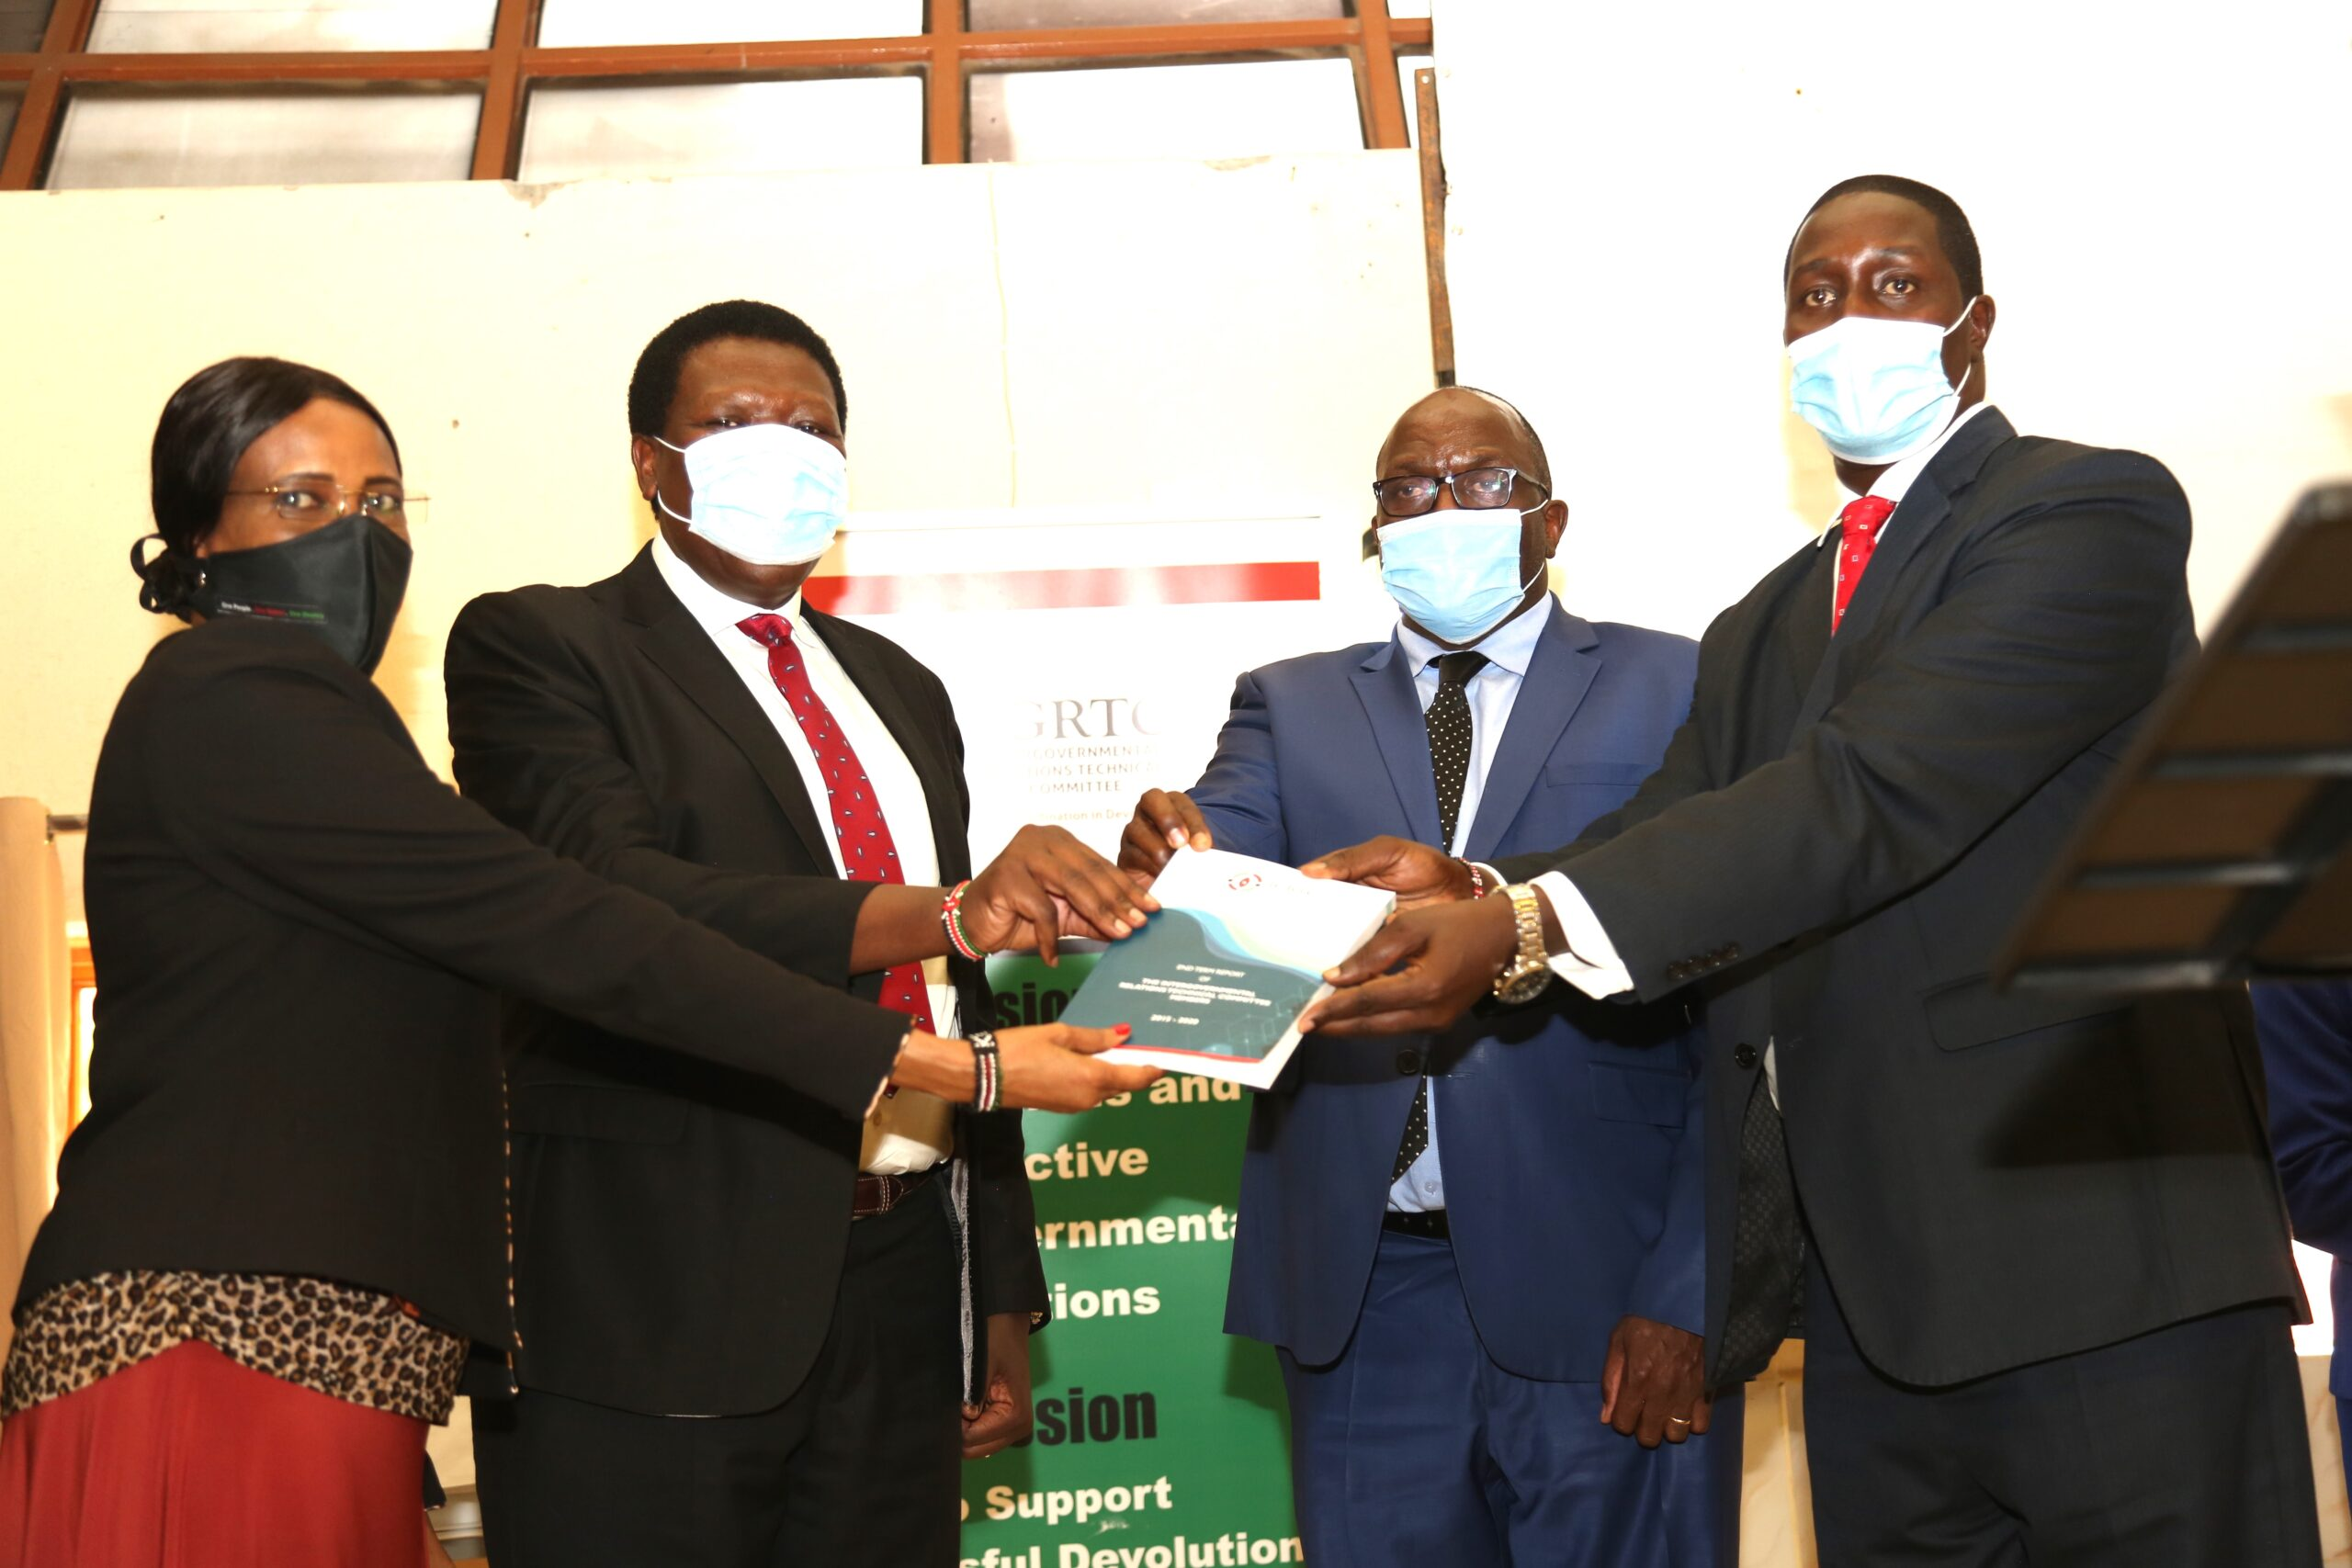 Handing over to the incoming IGRTC members Officiated by CS, Eugene Wamalwa on 13th July 2020